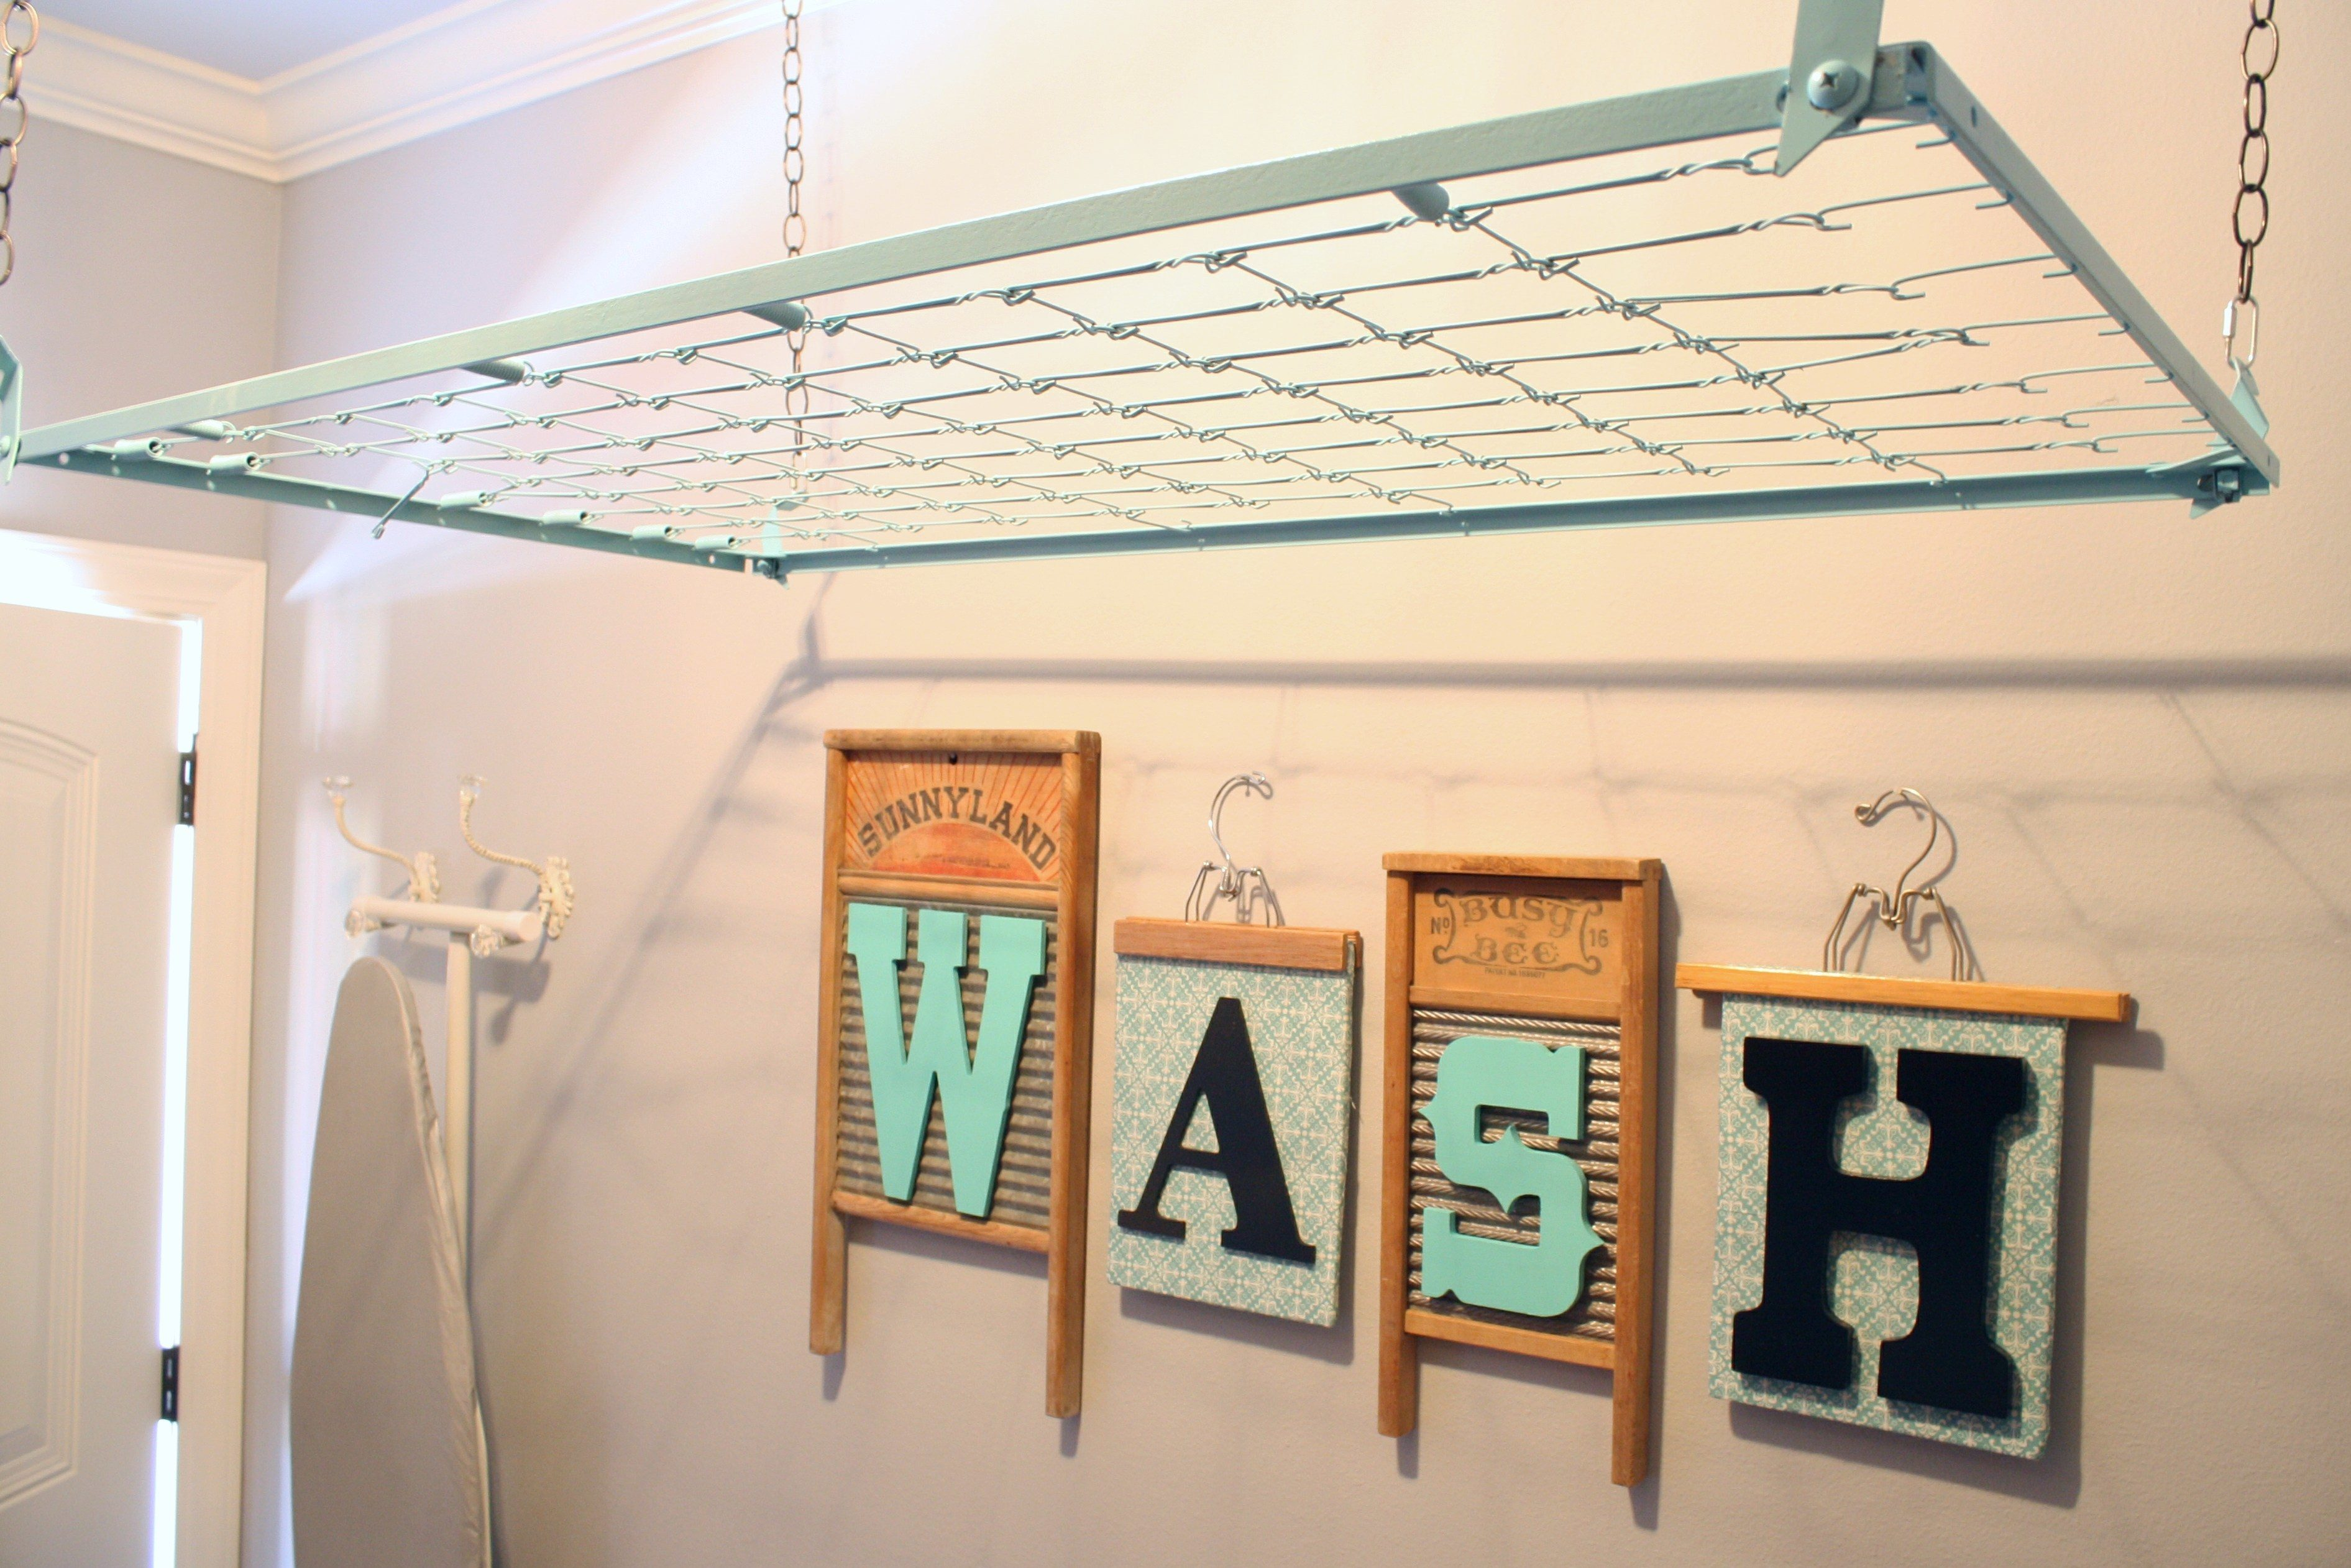 12 Fun Diy Mitten Drying Racks To Make The Ultimate Diy